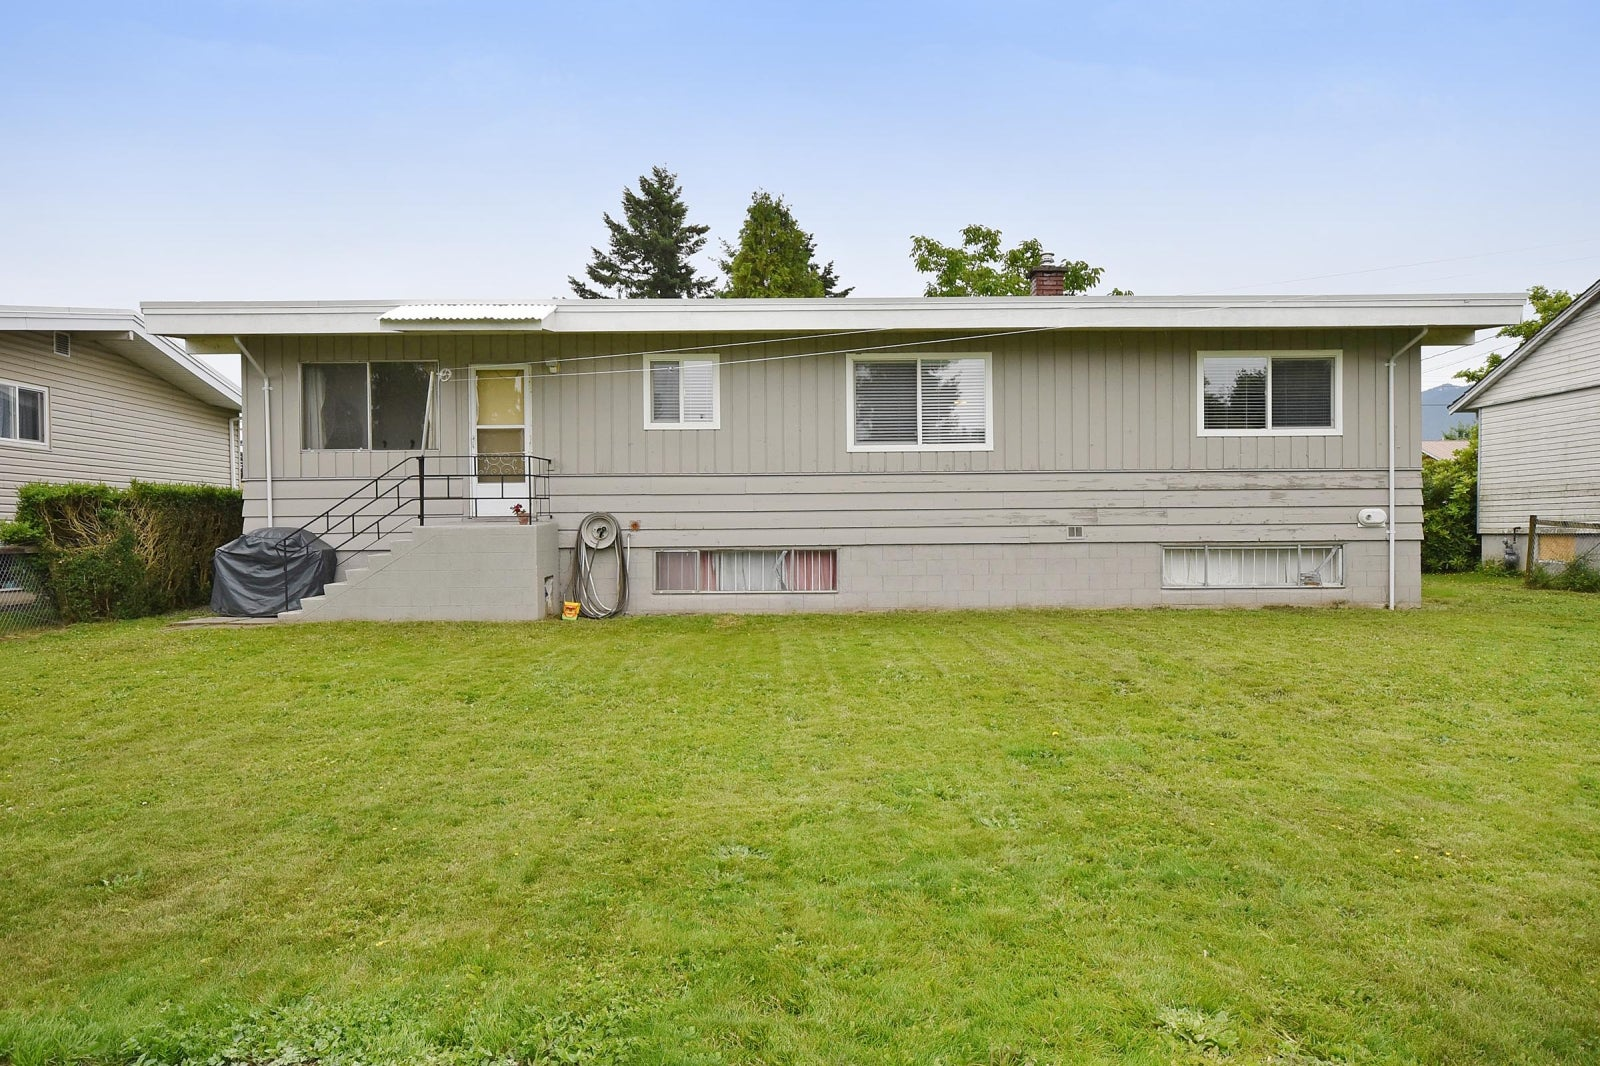 9445 CARLETON STREET - Chilliwack E Young-Yale House/Single Family for sale, 3 Bedrooms (R2180991) #20